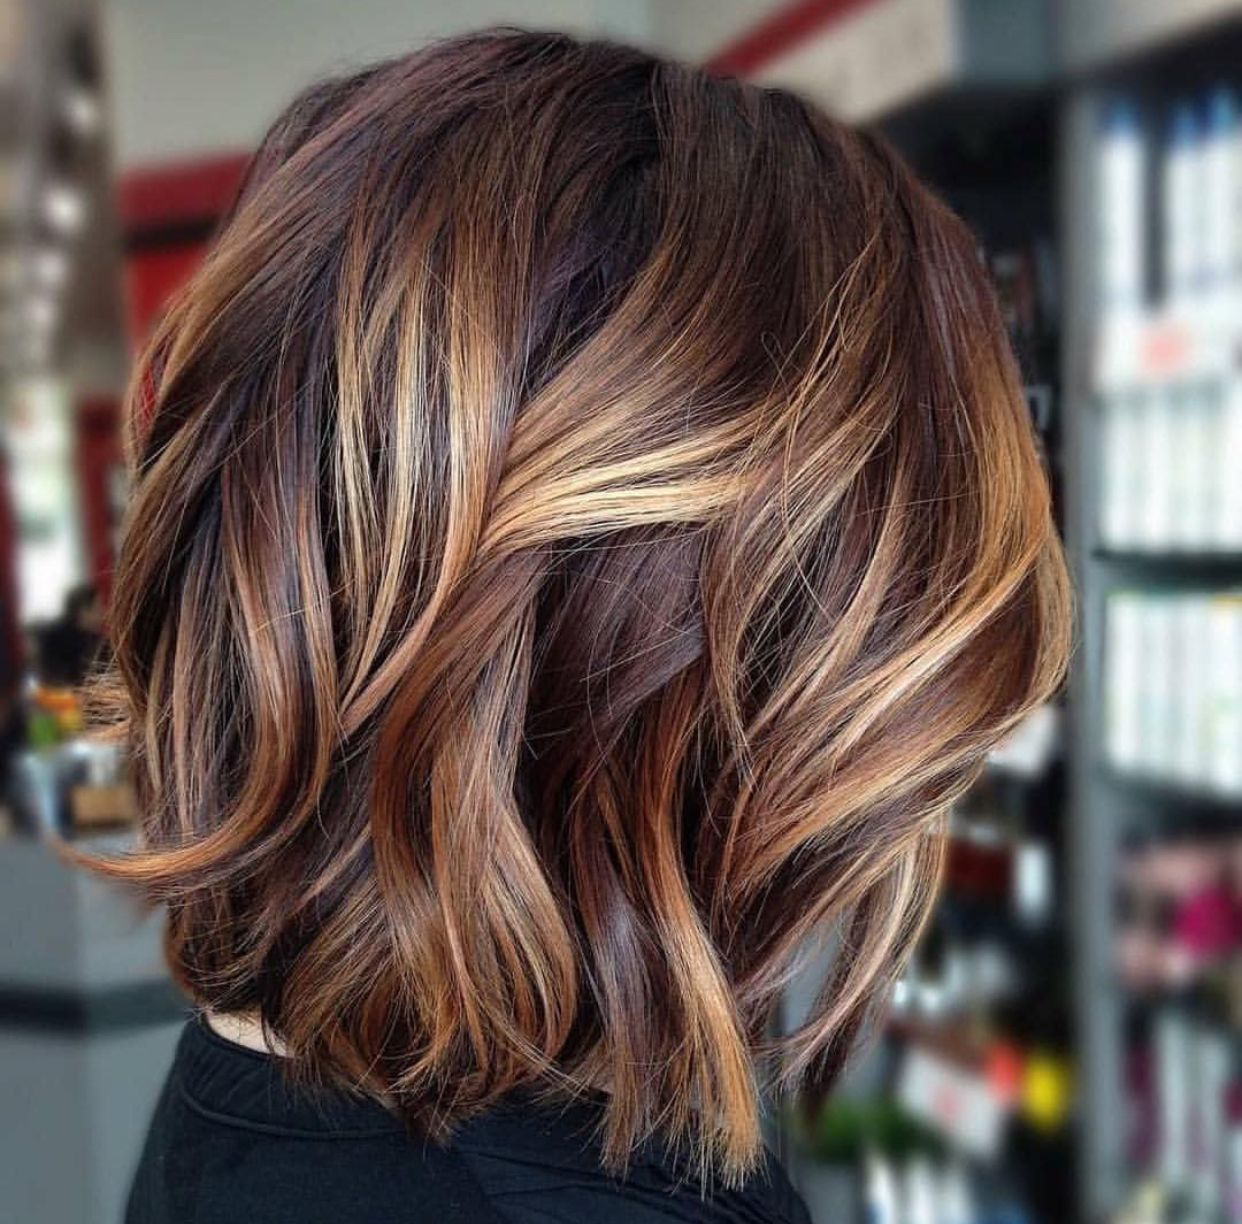 Pin By Lisa Moore On Color My World Hair Styles Gorgeous Hair Color Brown Hair With Blonde Highlights